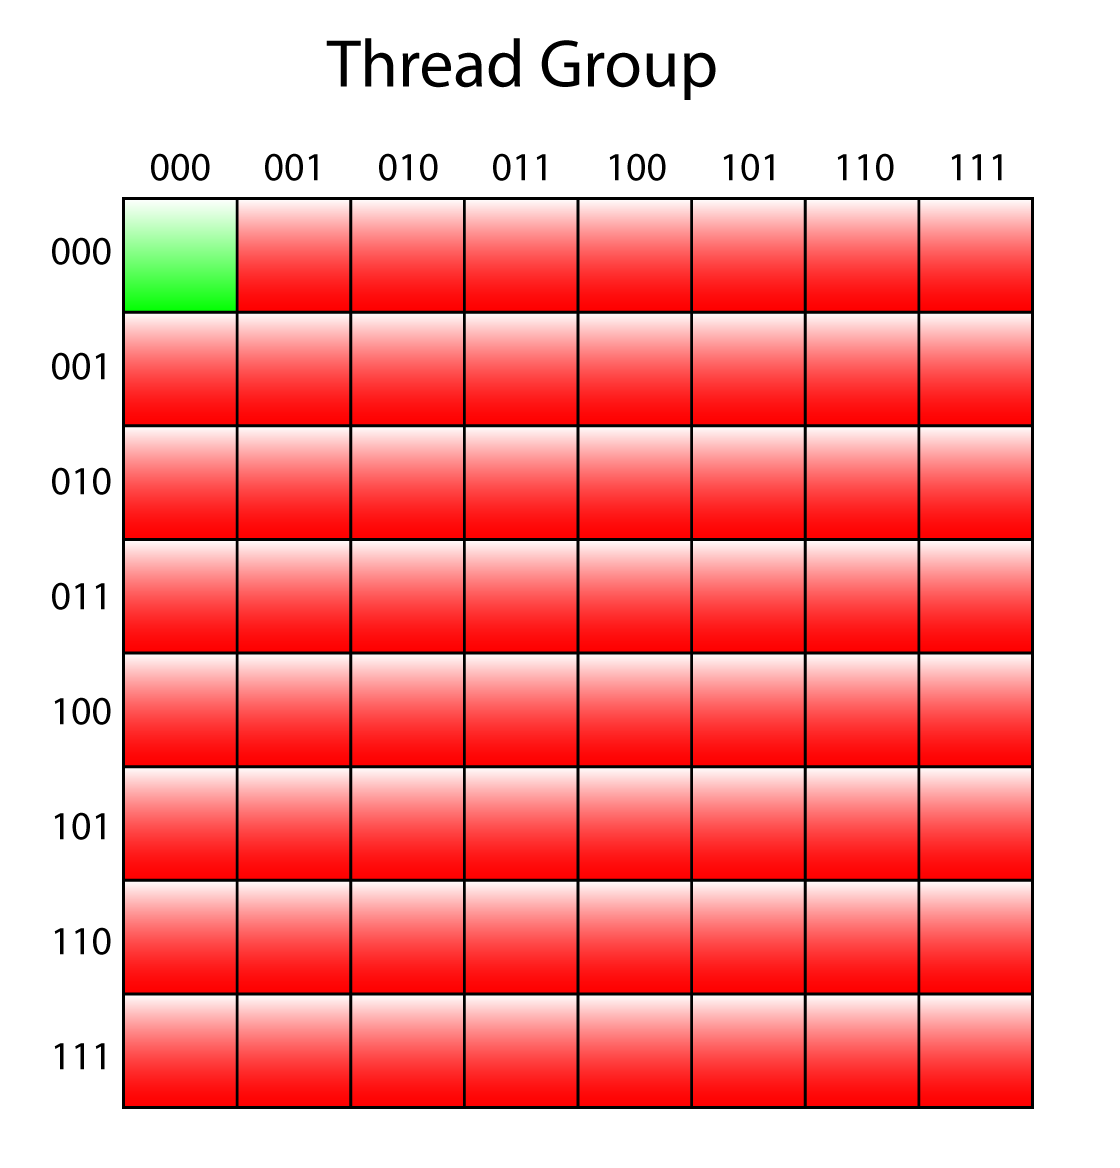 Only the thread with ID (0,0) needs to be active to produce the 4th mip level.